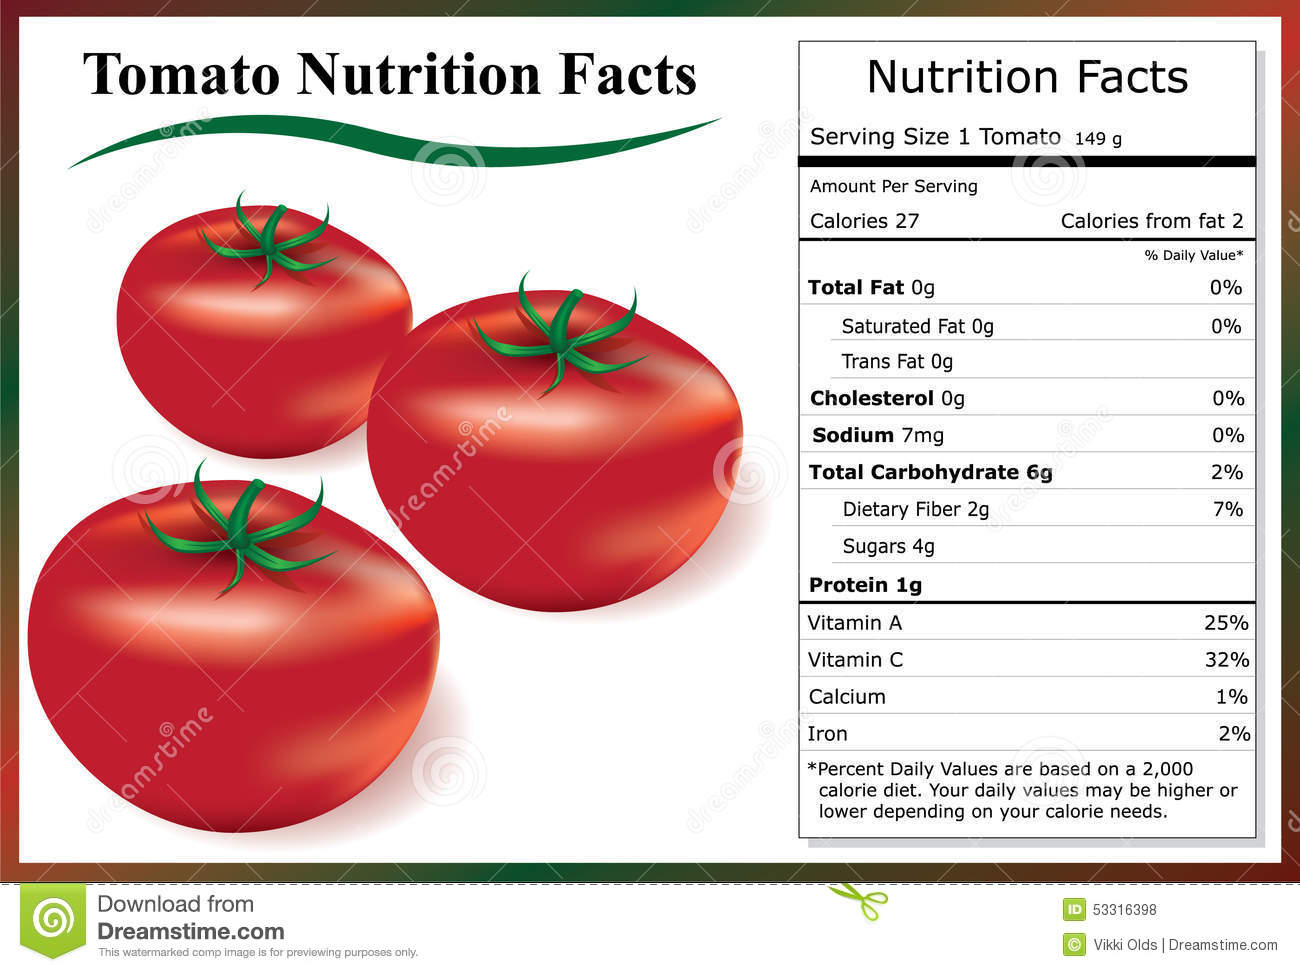 Illustration of tomatoes and a tomato nutrition food label.